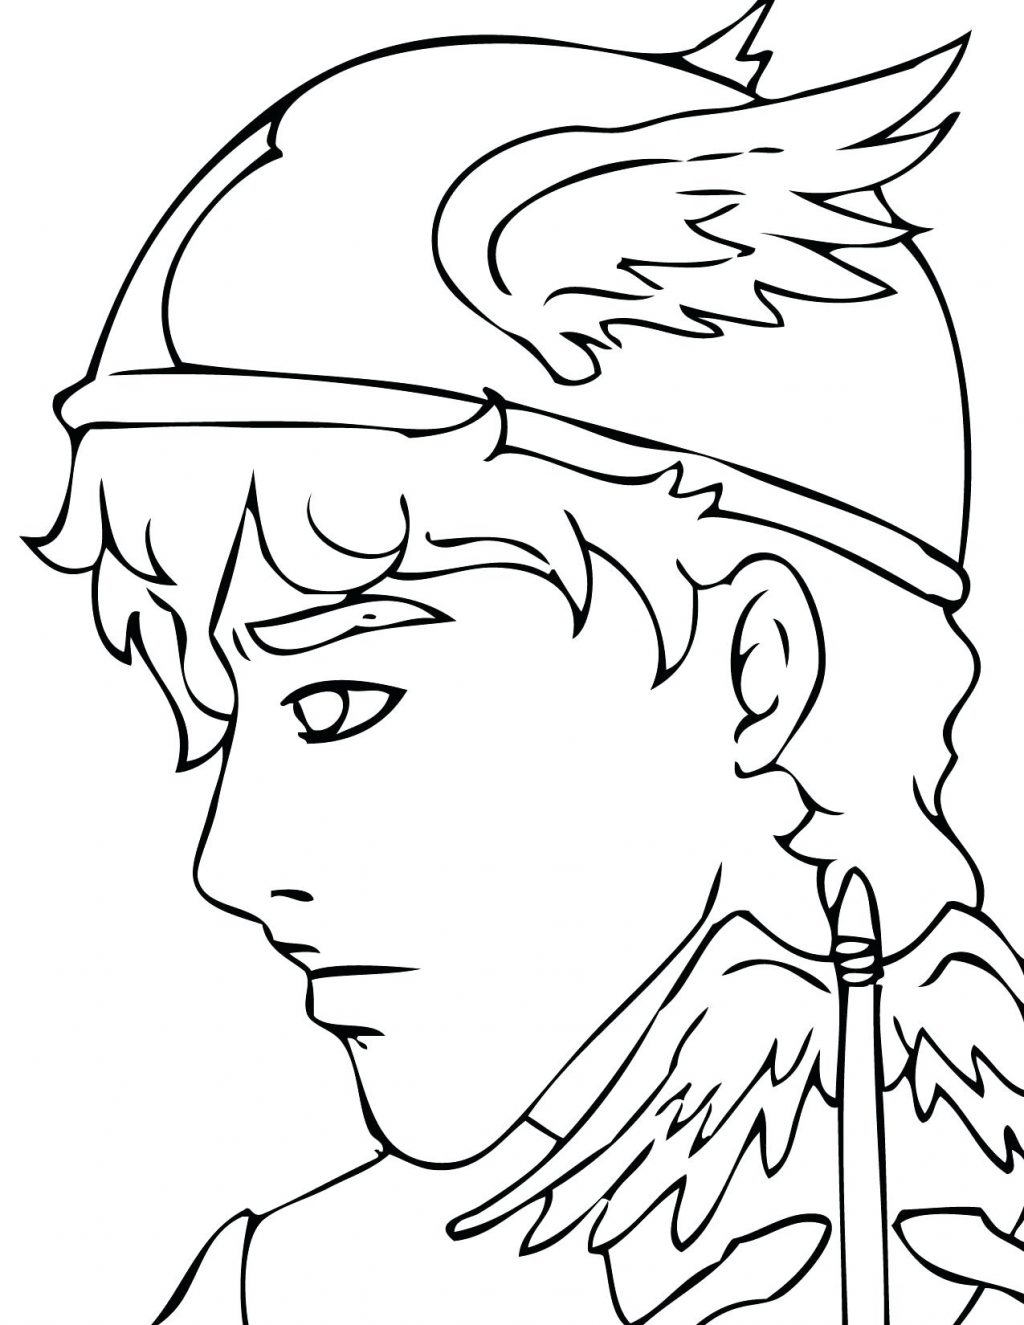 1024x1325 Coloring Page Greek Gods Coloring Pages Apollo God Greek Gods